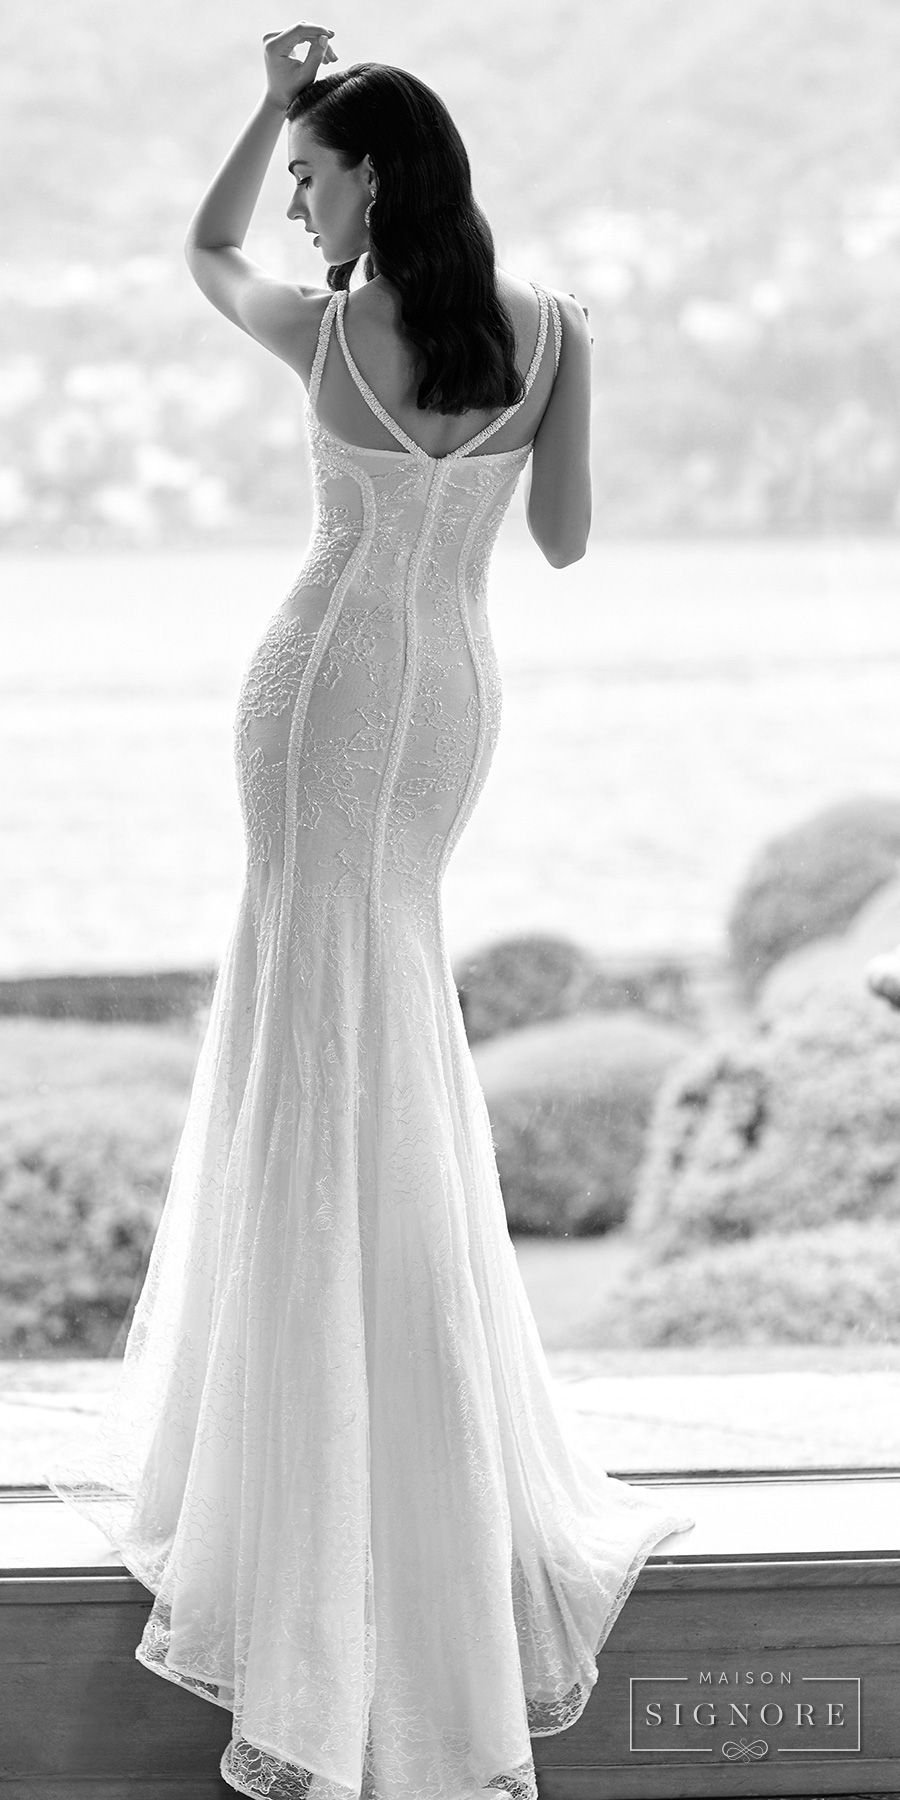 Simple wedding dresses for eloping  Maison Signore Exquisite Made in Italy Wedding Dresses u Now